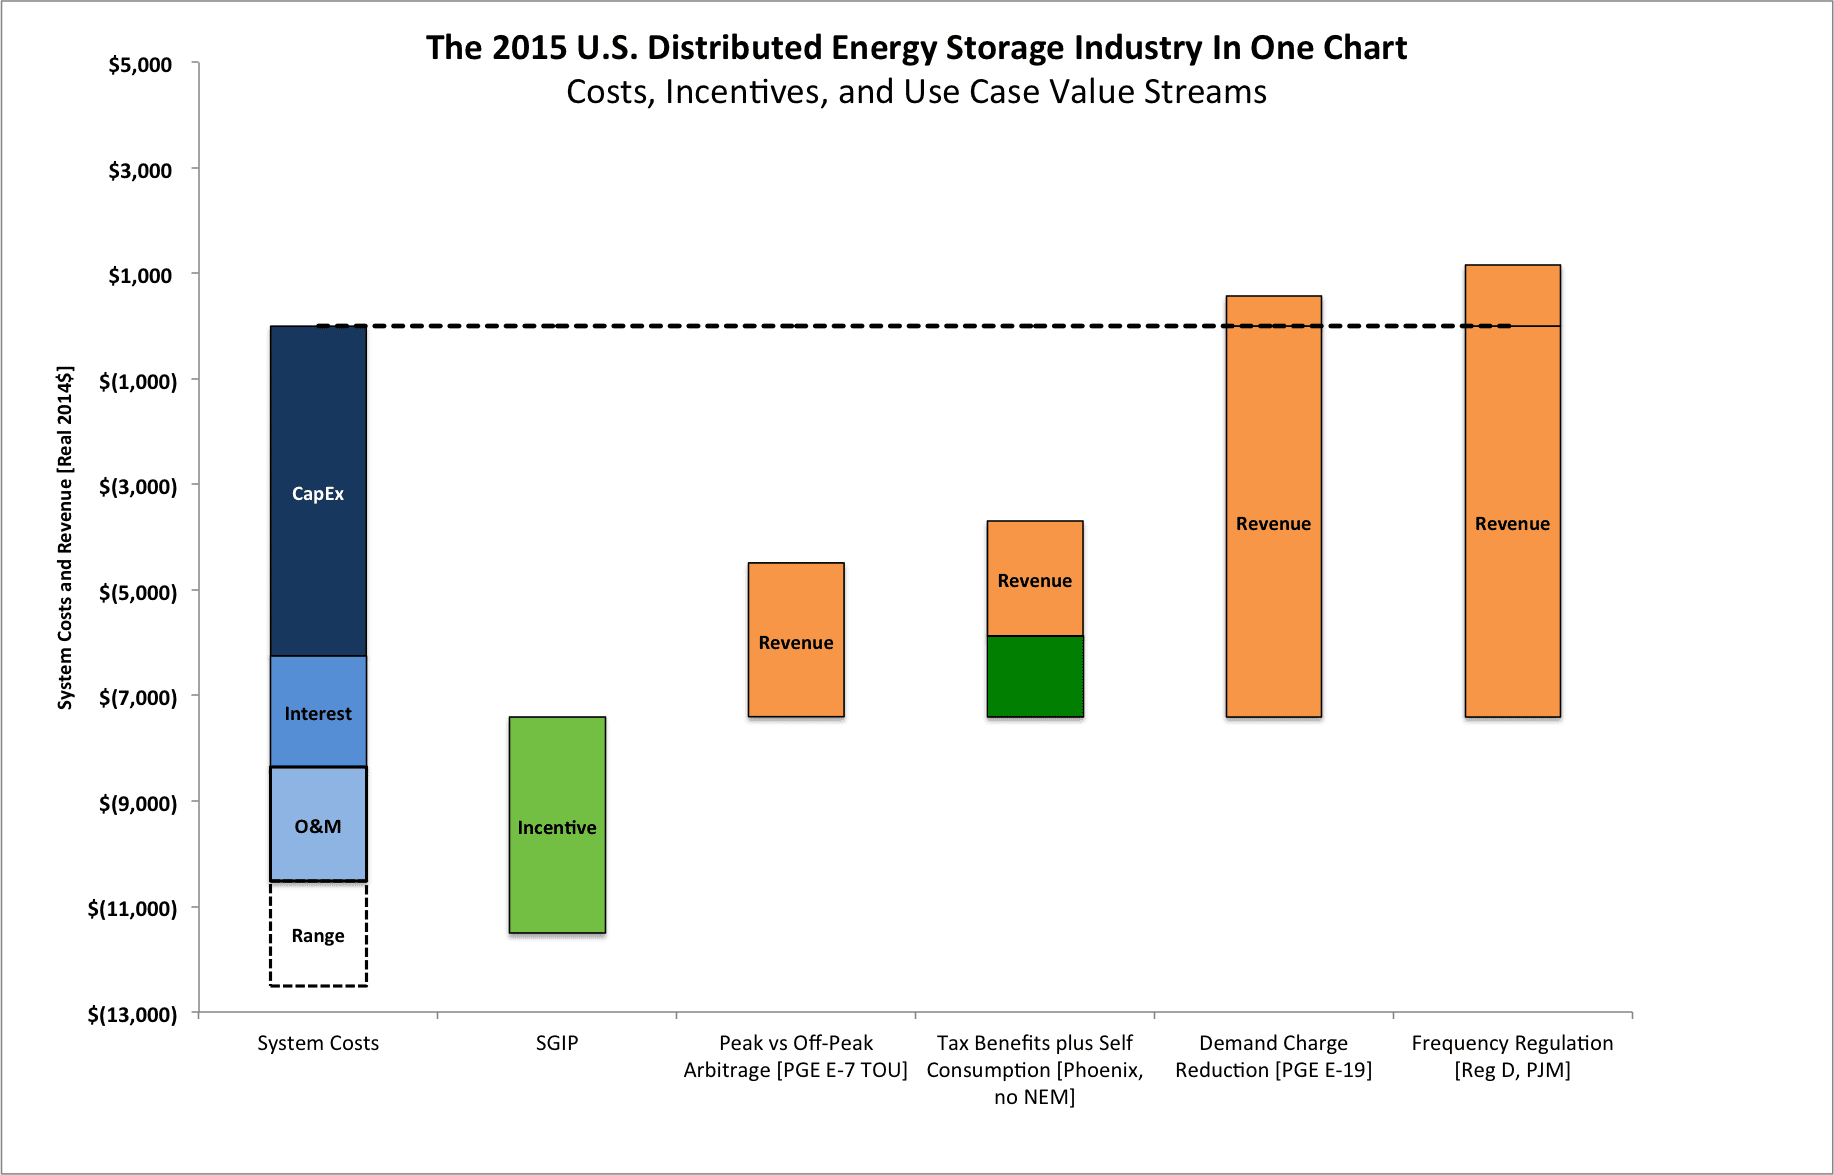 energy bar diagram examples warn 2500 atv winch wiring graph of the day storage market in one chart